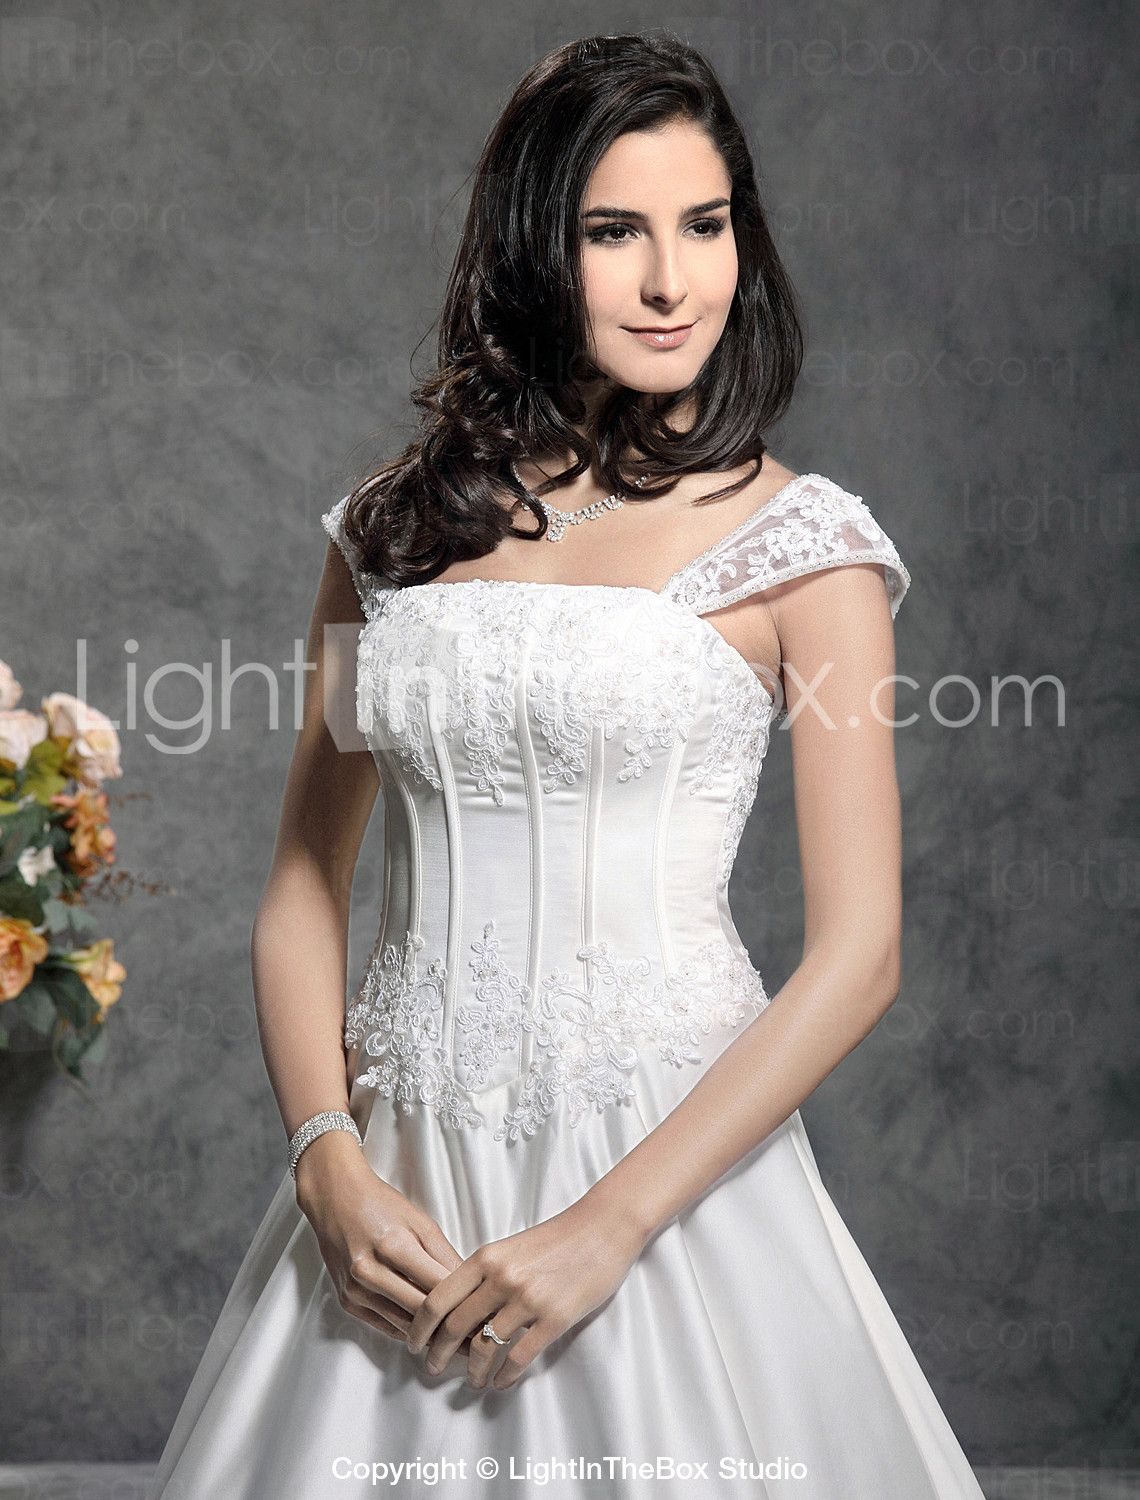 Lightinthebox wedding dresses  ALine Square Neck Floor Length Satin Wedding Dress with Sequin